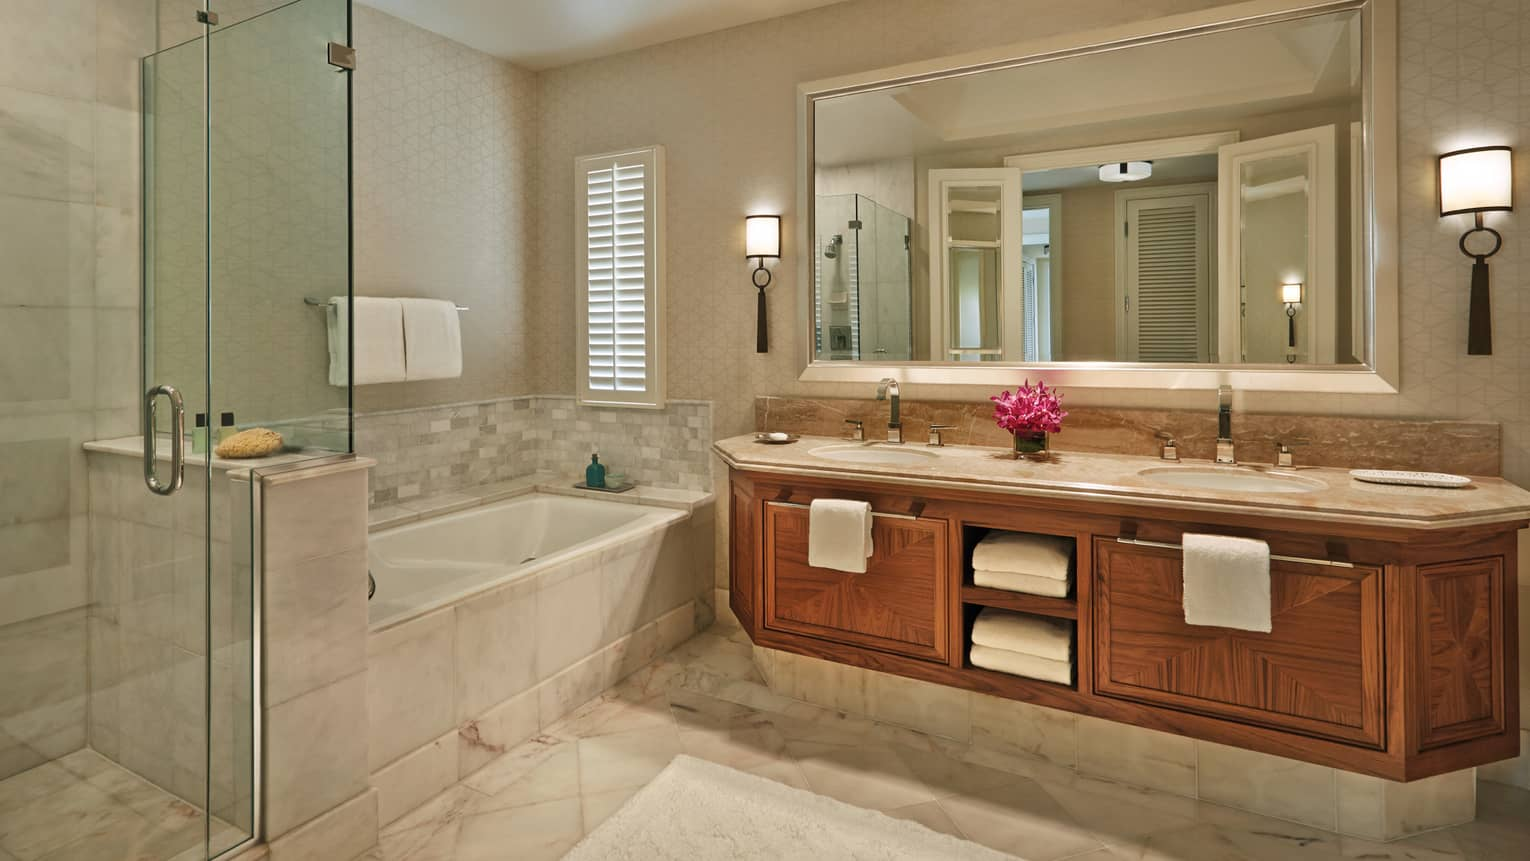 Maile Suite bathroom with double vanity, tub and shower and fresh flowers on the counter